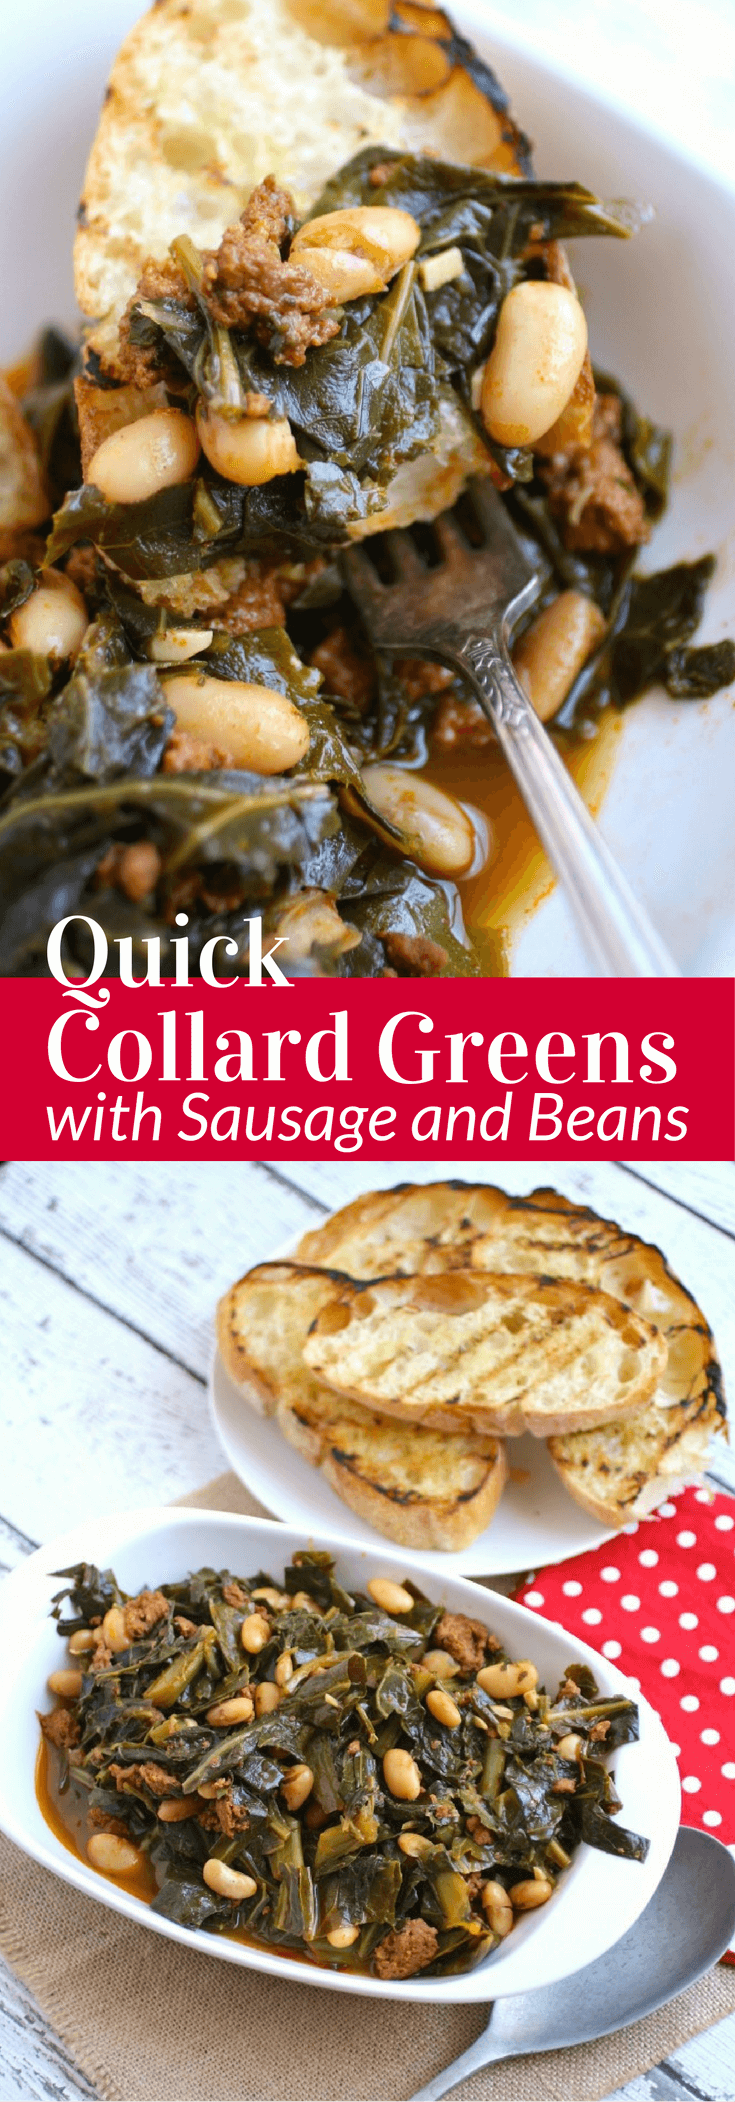 Enjoy Quick Collard Greens with Sausage and Beans as a traditional side dish on New Year's Day!